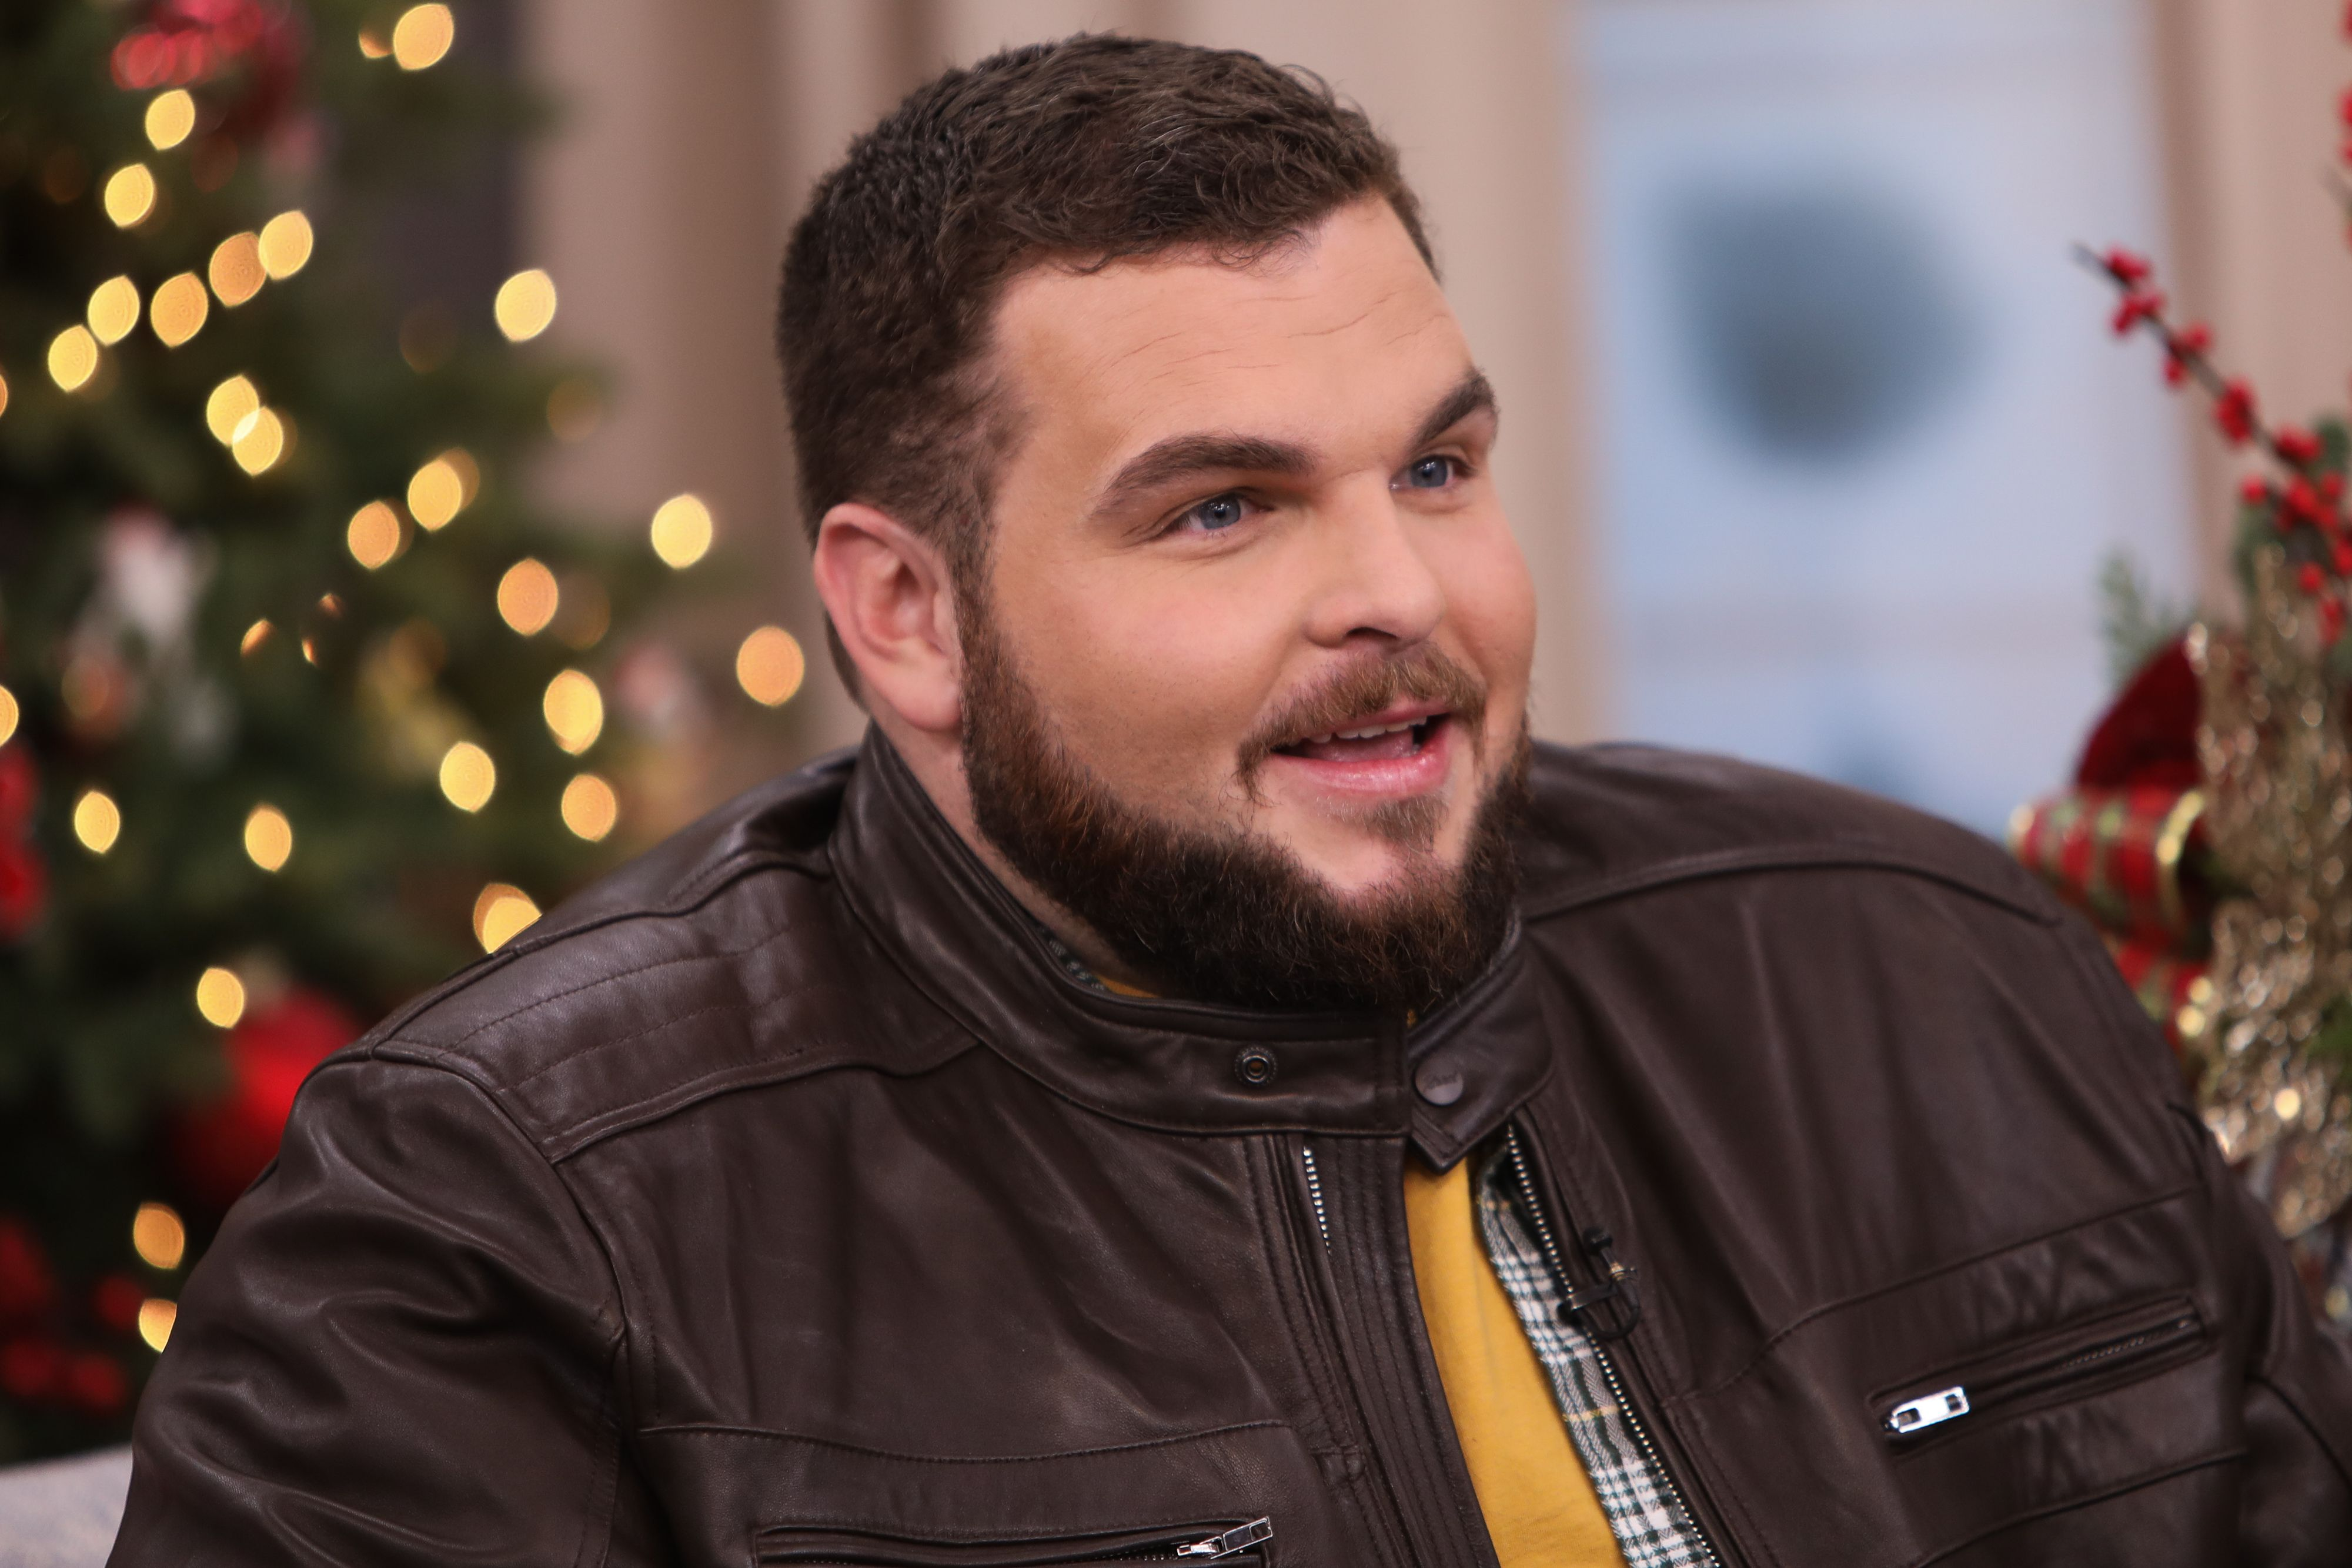 """Singer Jake Hoot at Hallmark Channel's """"Home & Family"""" at Universal Studios Hollywood on December 19, 2019 